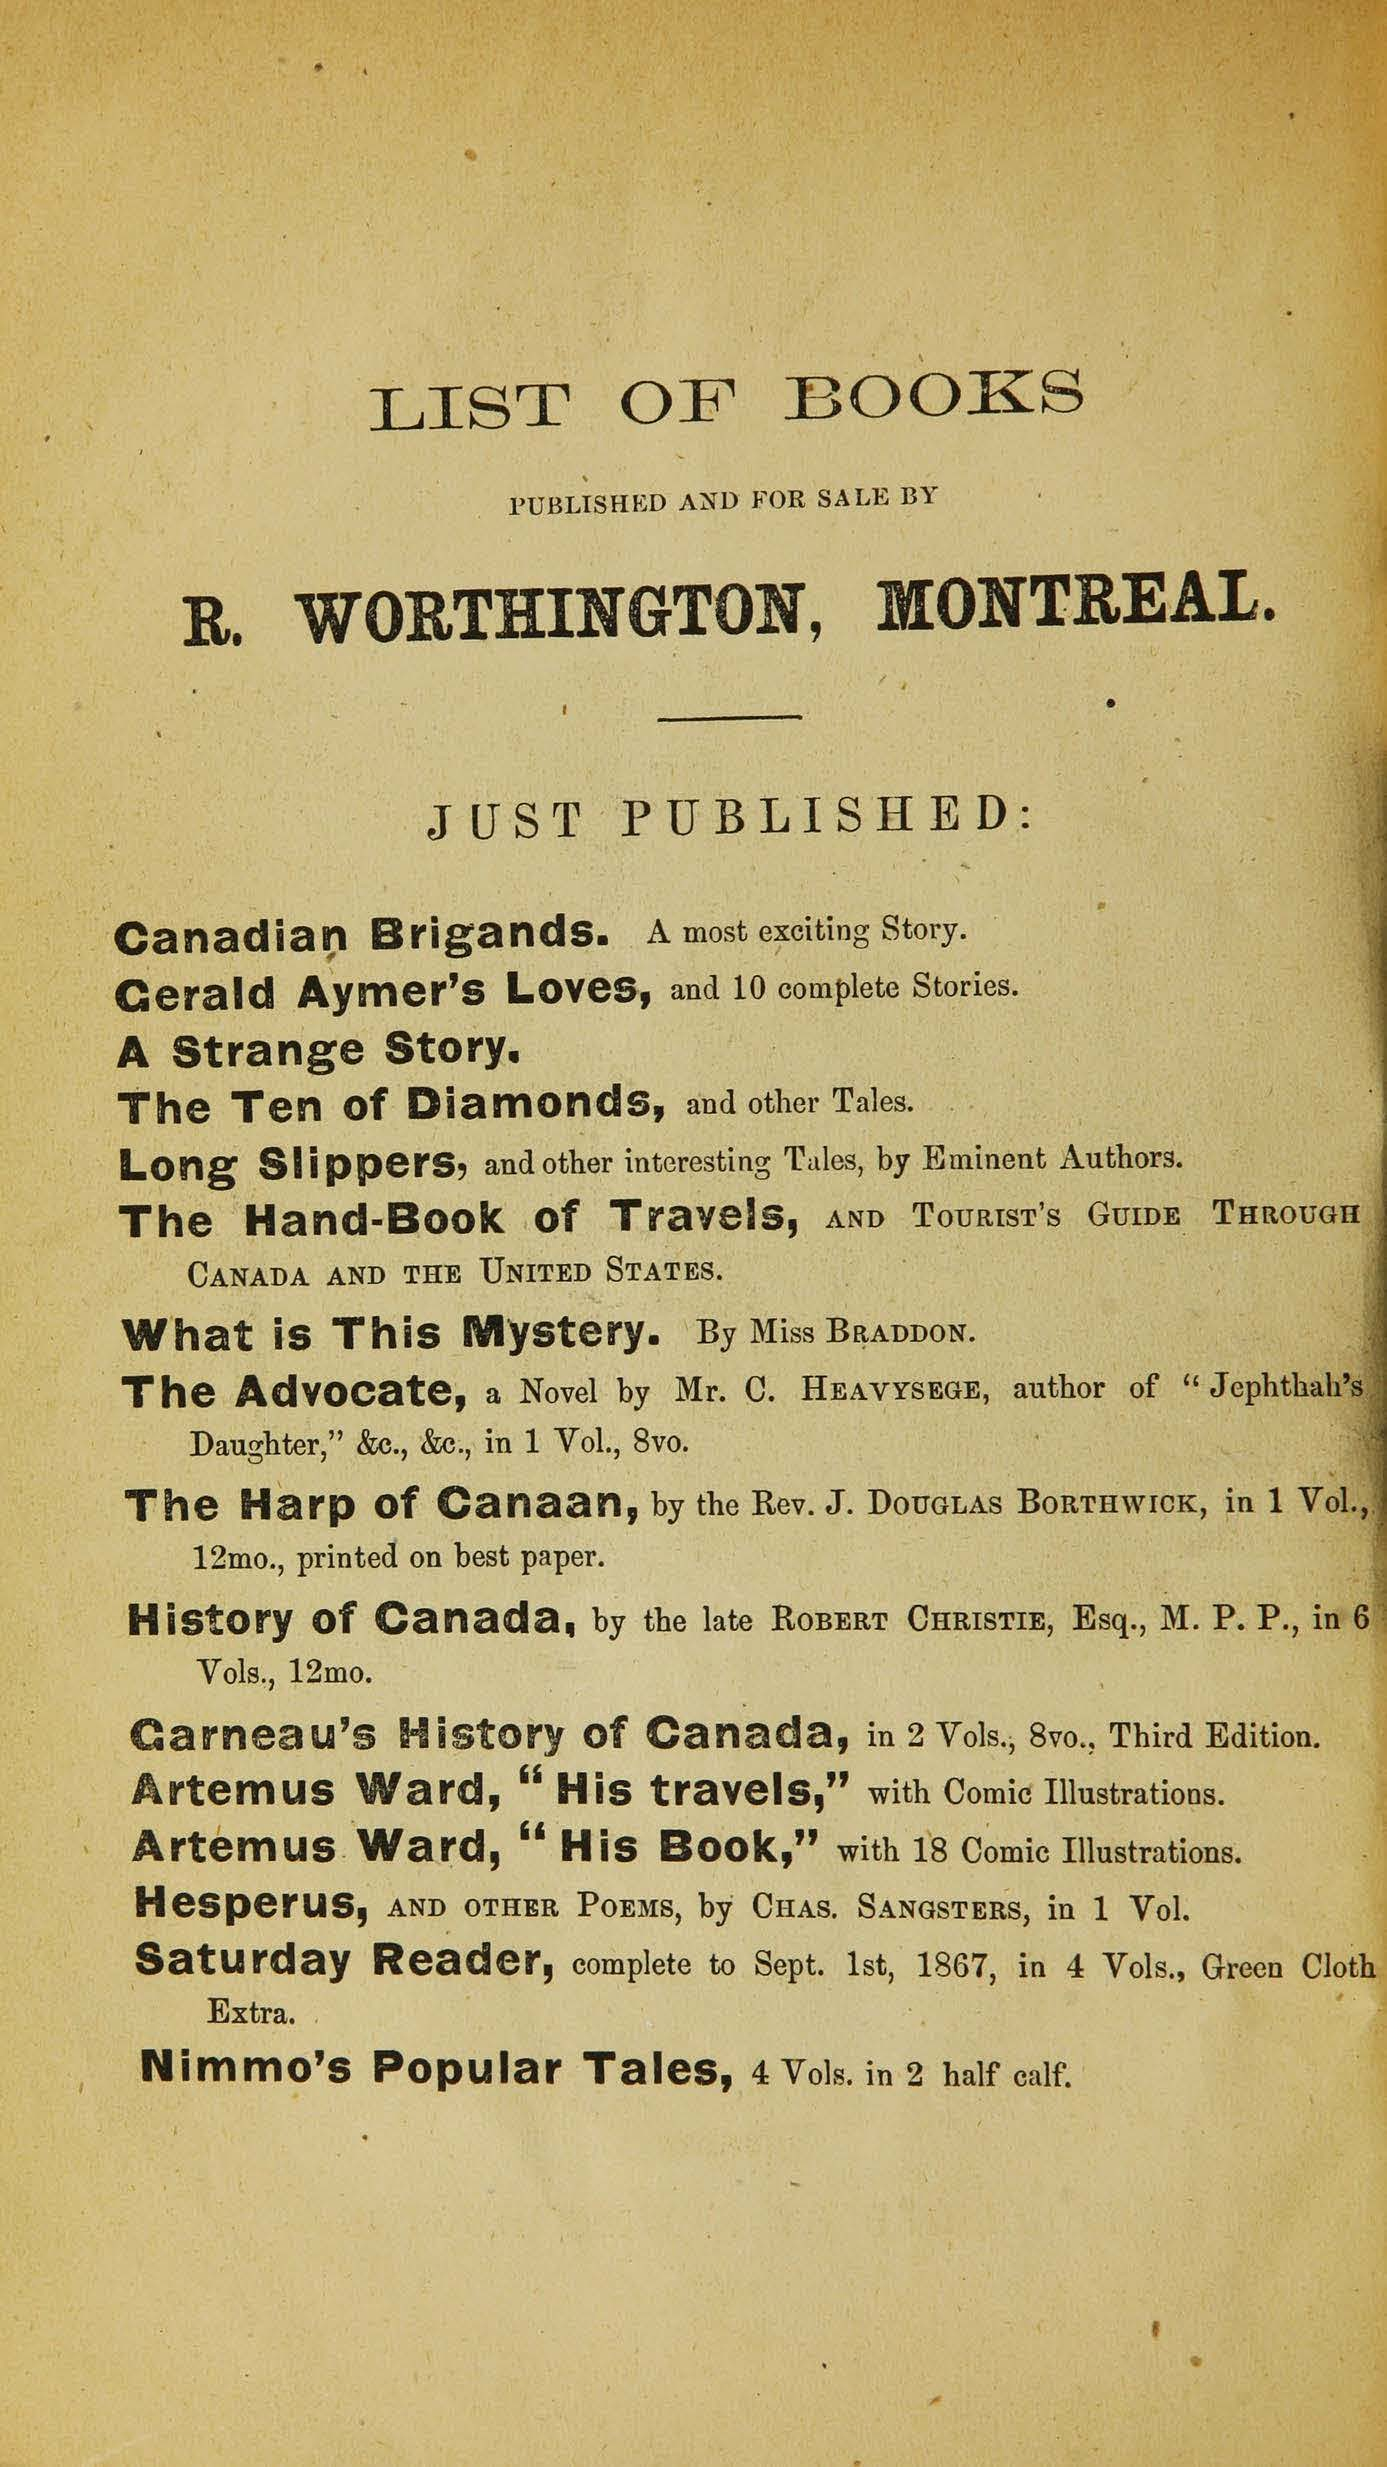 R. Worthington book list on page 12 of The Canadian brigands: An intensely exciting story of crime in Quebec thirty years ago. (1867).